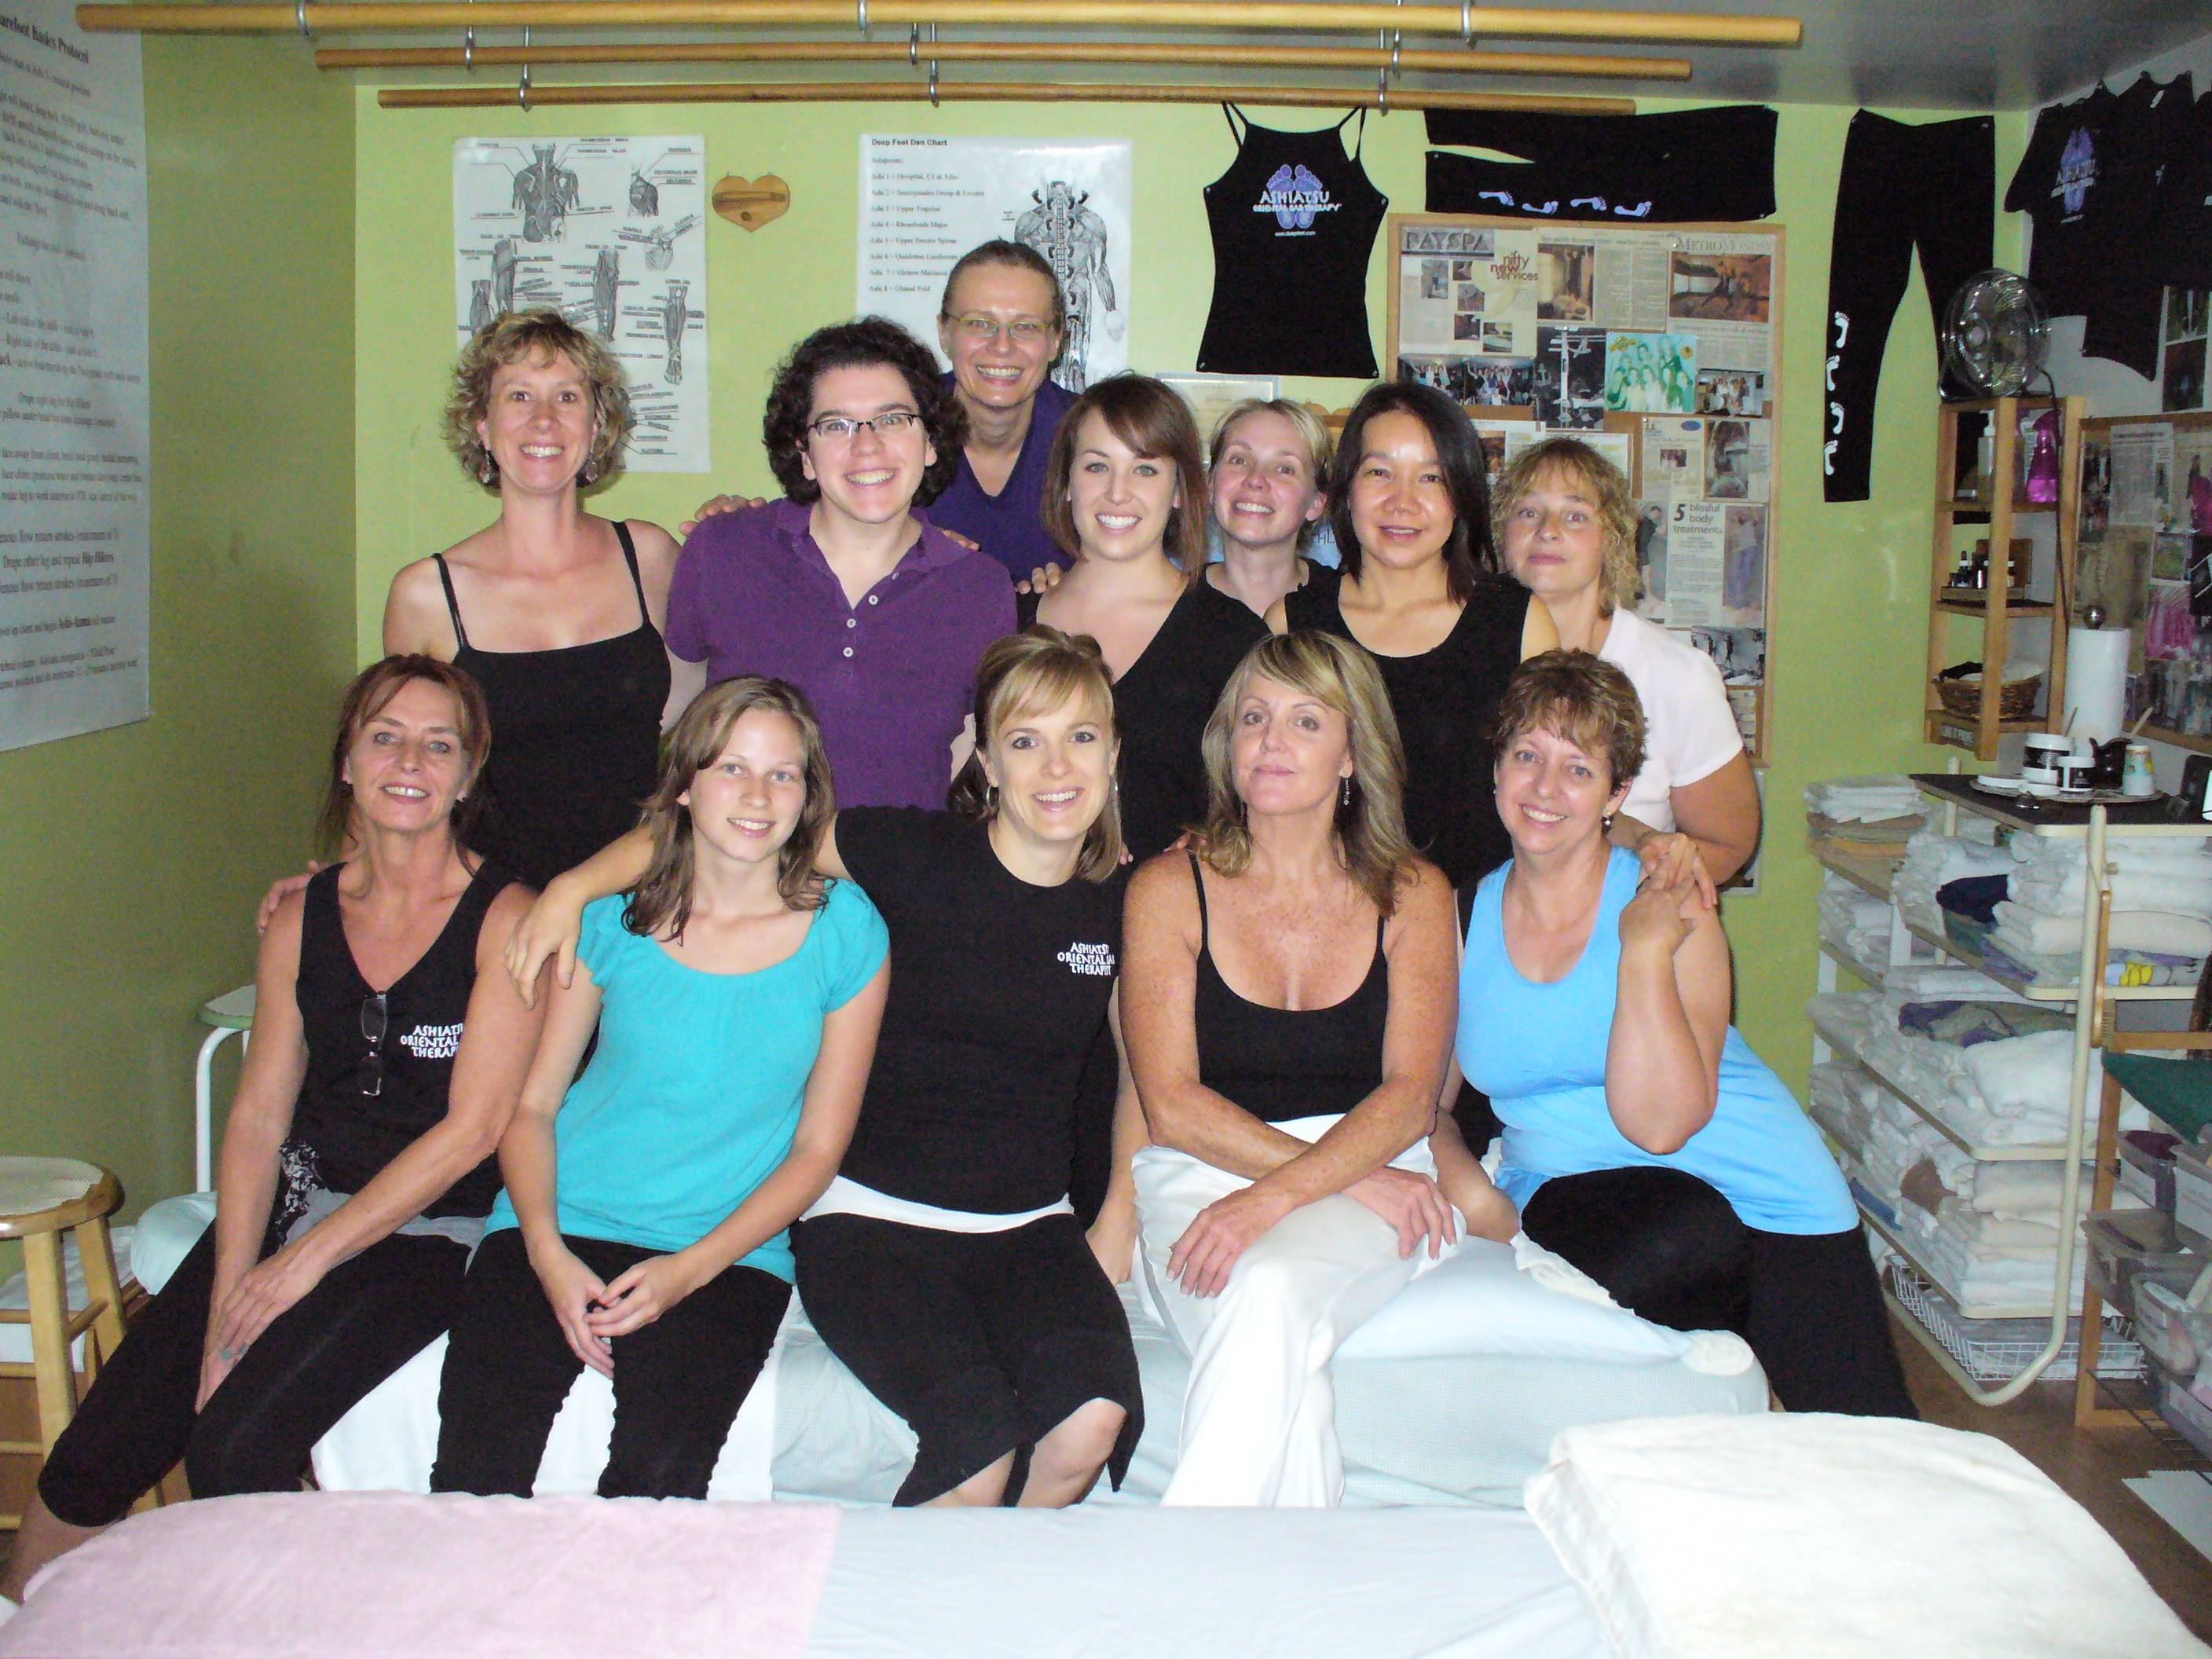 Teresa Porter with Ruthie Hardee, founder of Ashiatsu Oriental Bar Therapy, in Colorado.